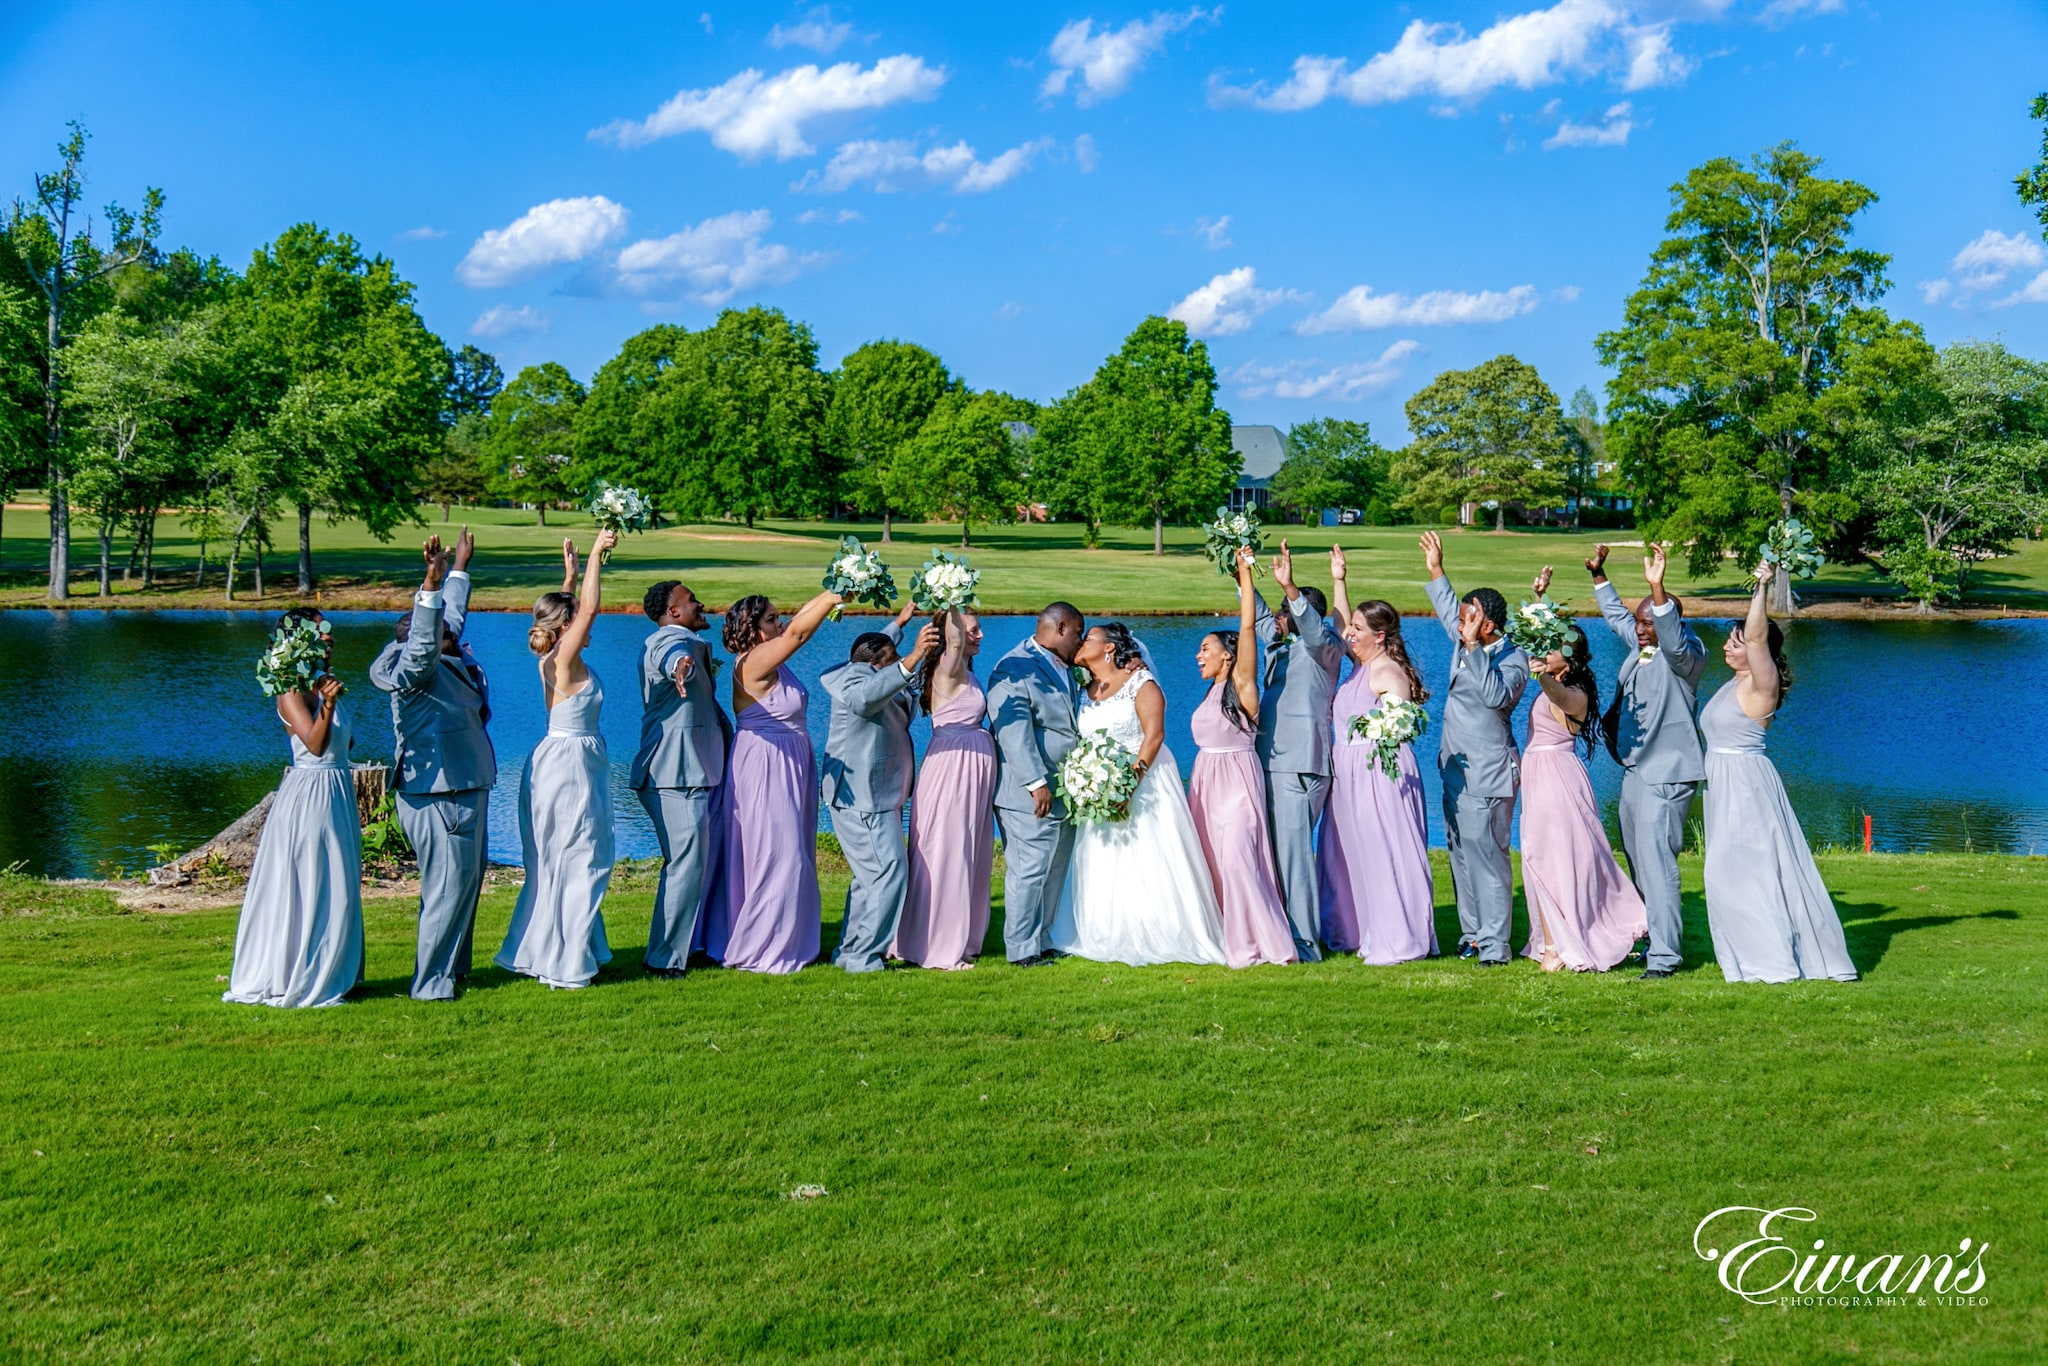 wedding party standing on green grass field during daytime